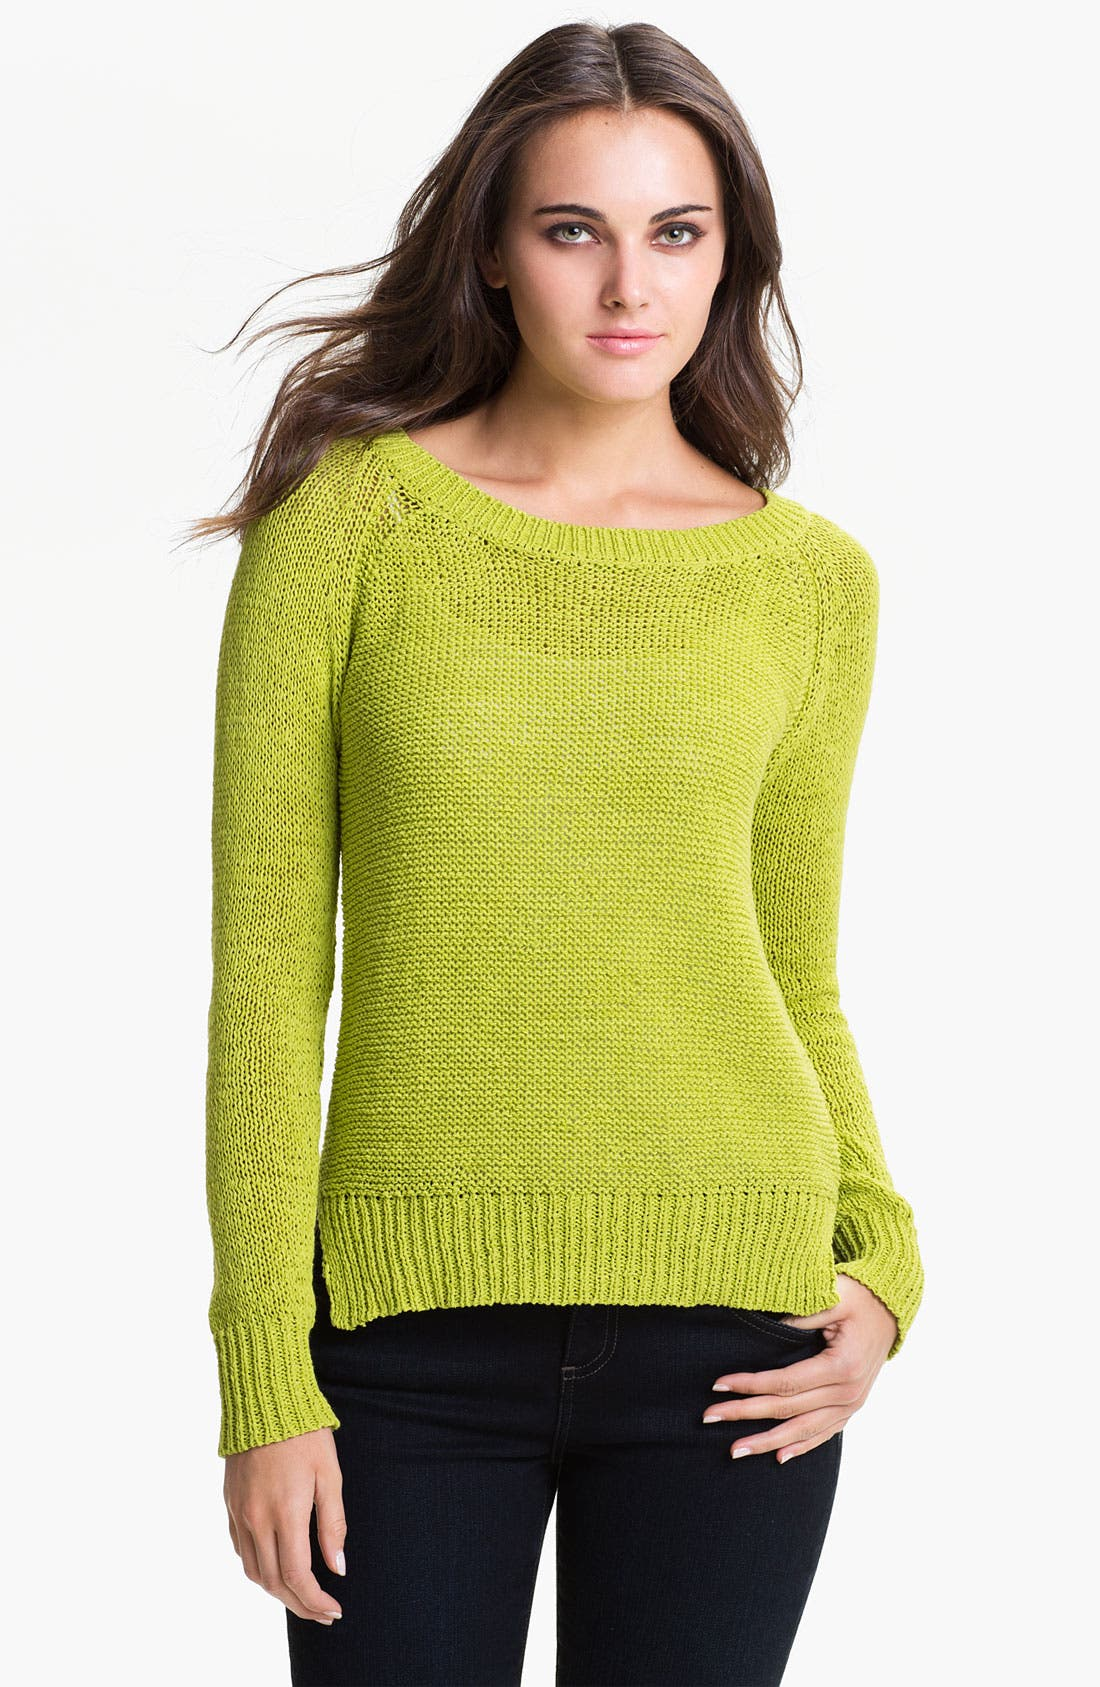 Alternate Image 1 Selected - Vince Camuto Open Stitch Sweater